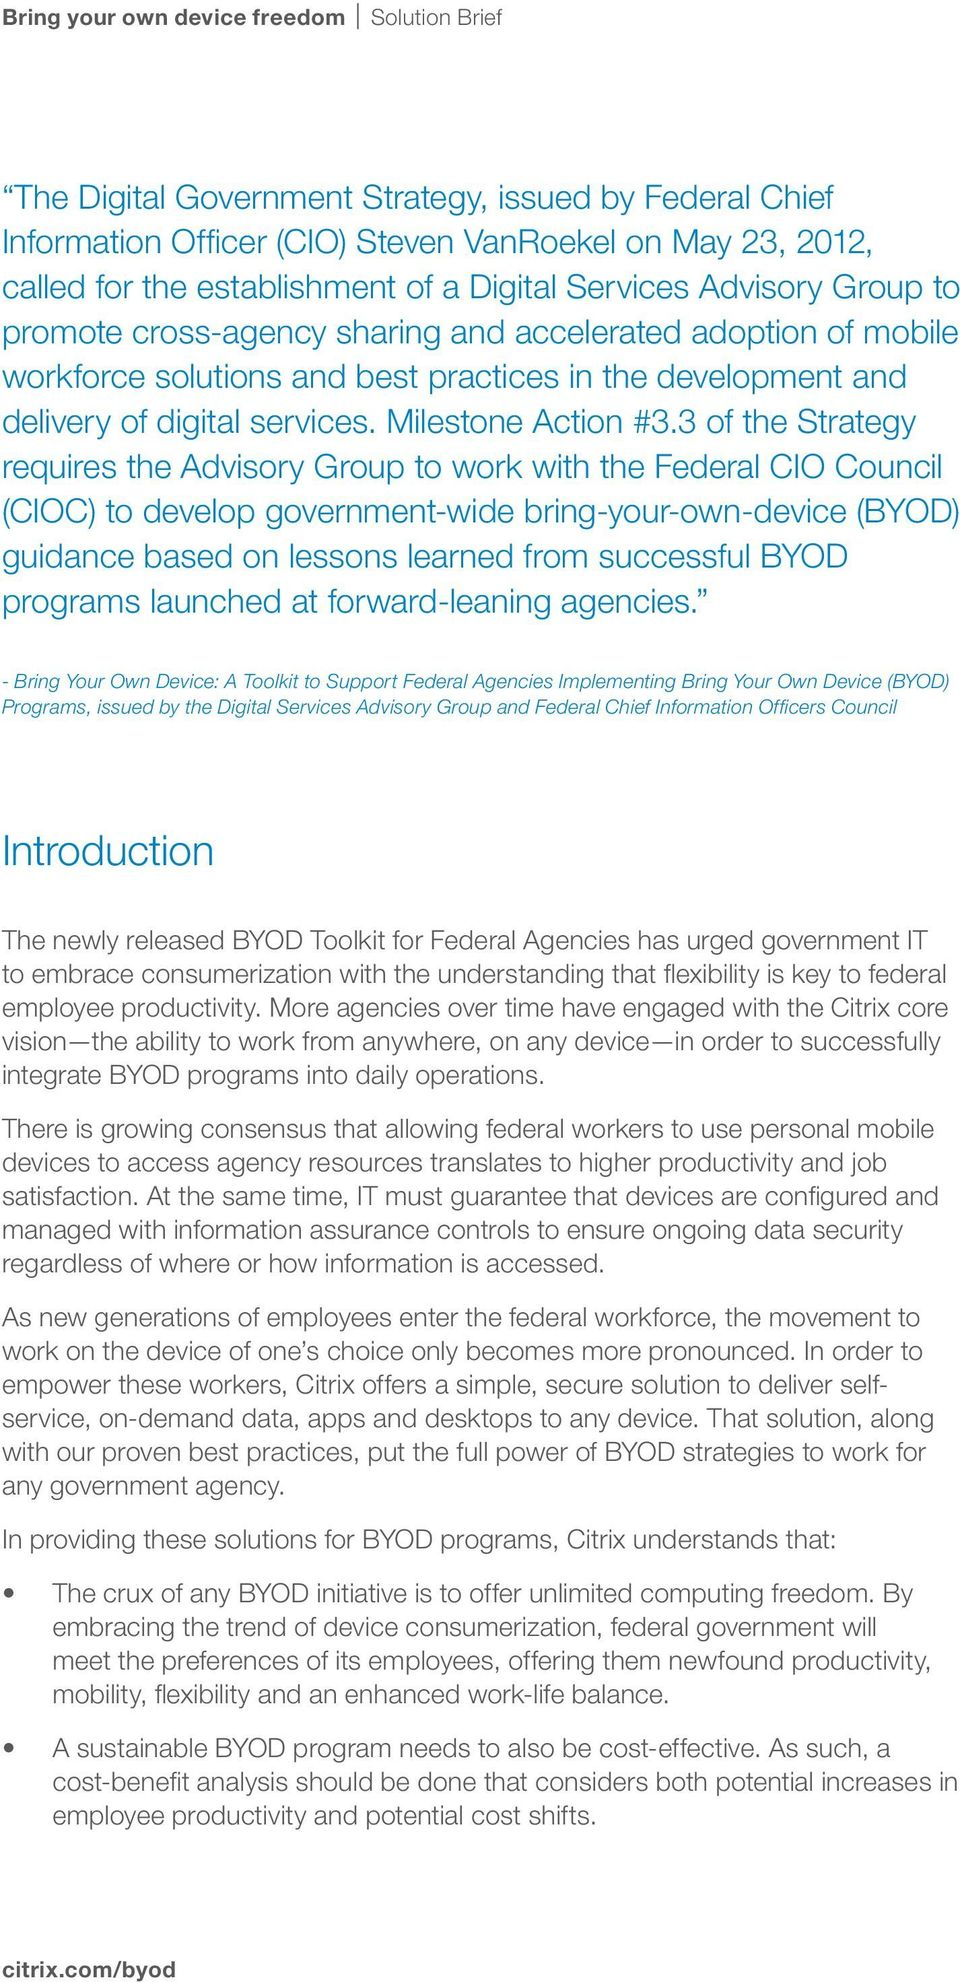 3 of the Strategy requires the Advisory Group to work with the Federal CIO Council (CIOC) to develop government-wide bring-your-own-device (BYOD) guidance based on lessons learned from successful